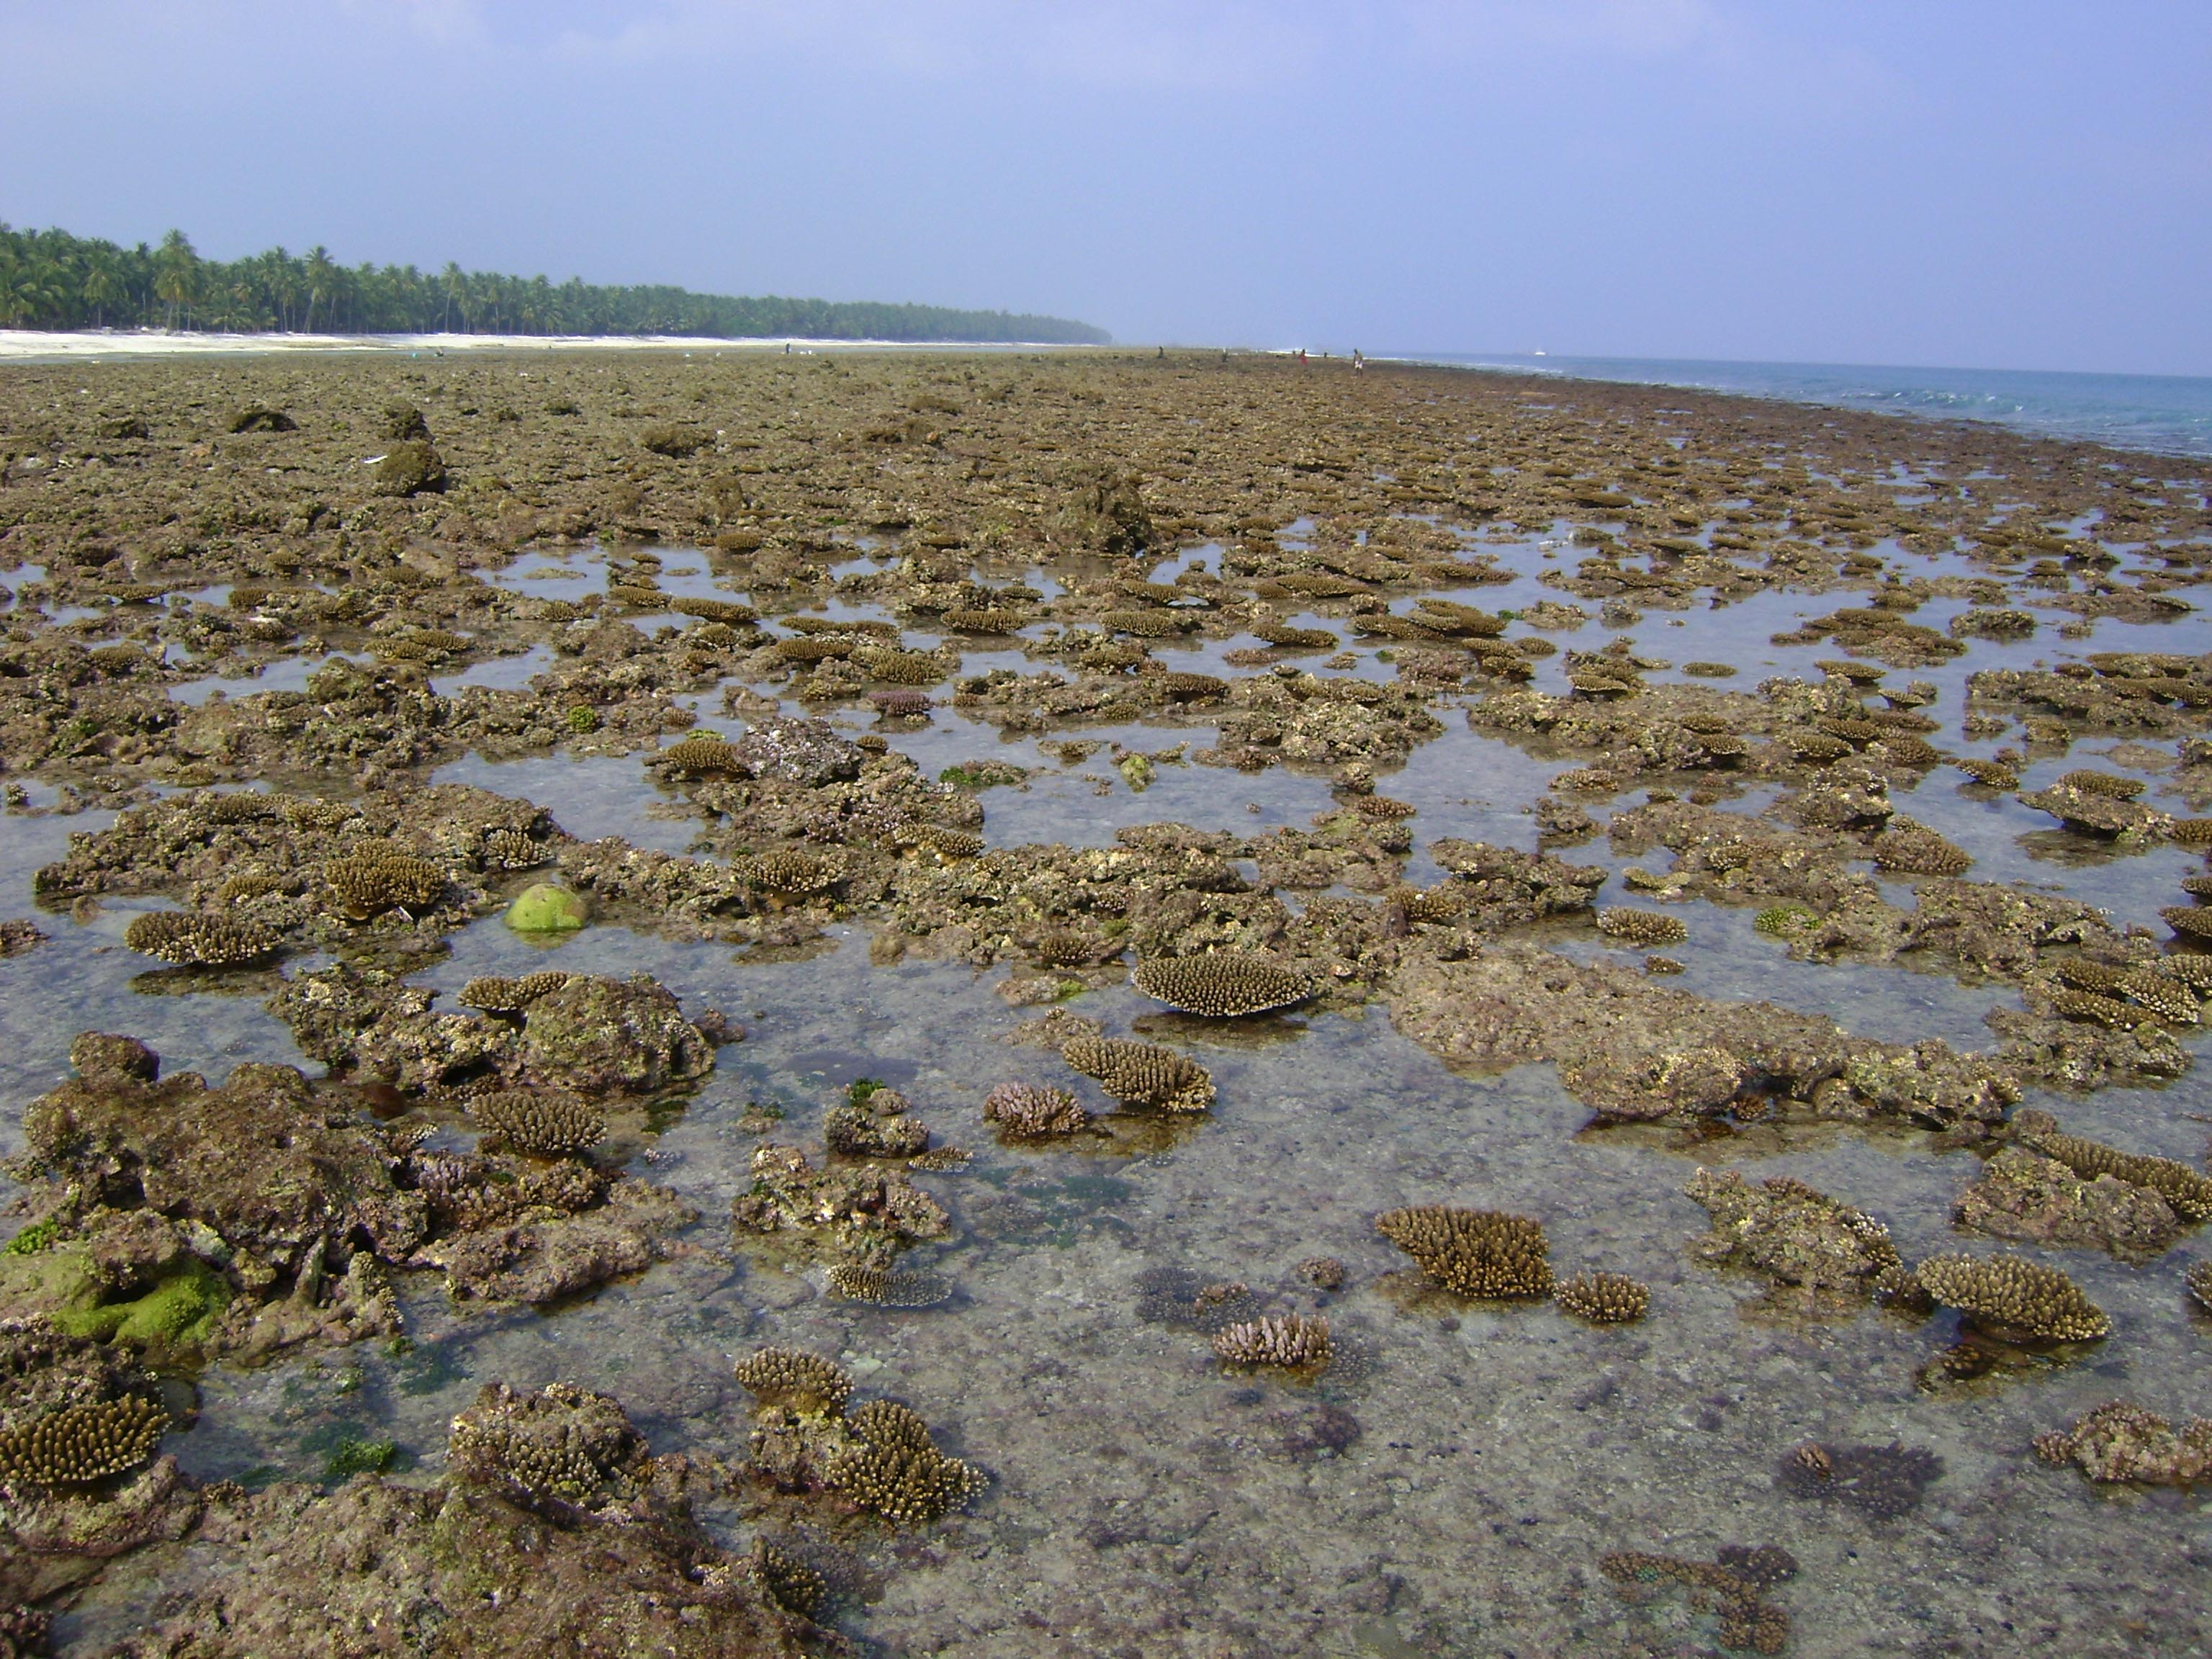 Exposed corals of Acropora spp. lying scattered during low tide in Agatti island